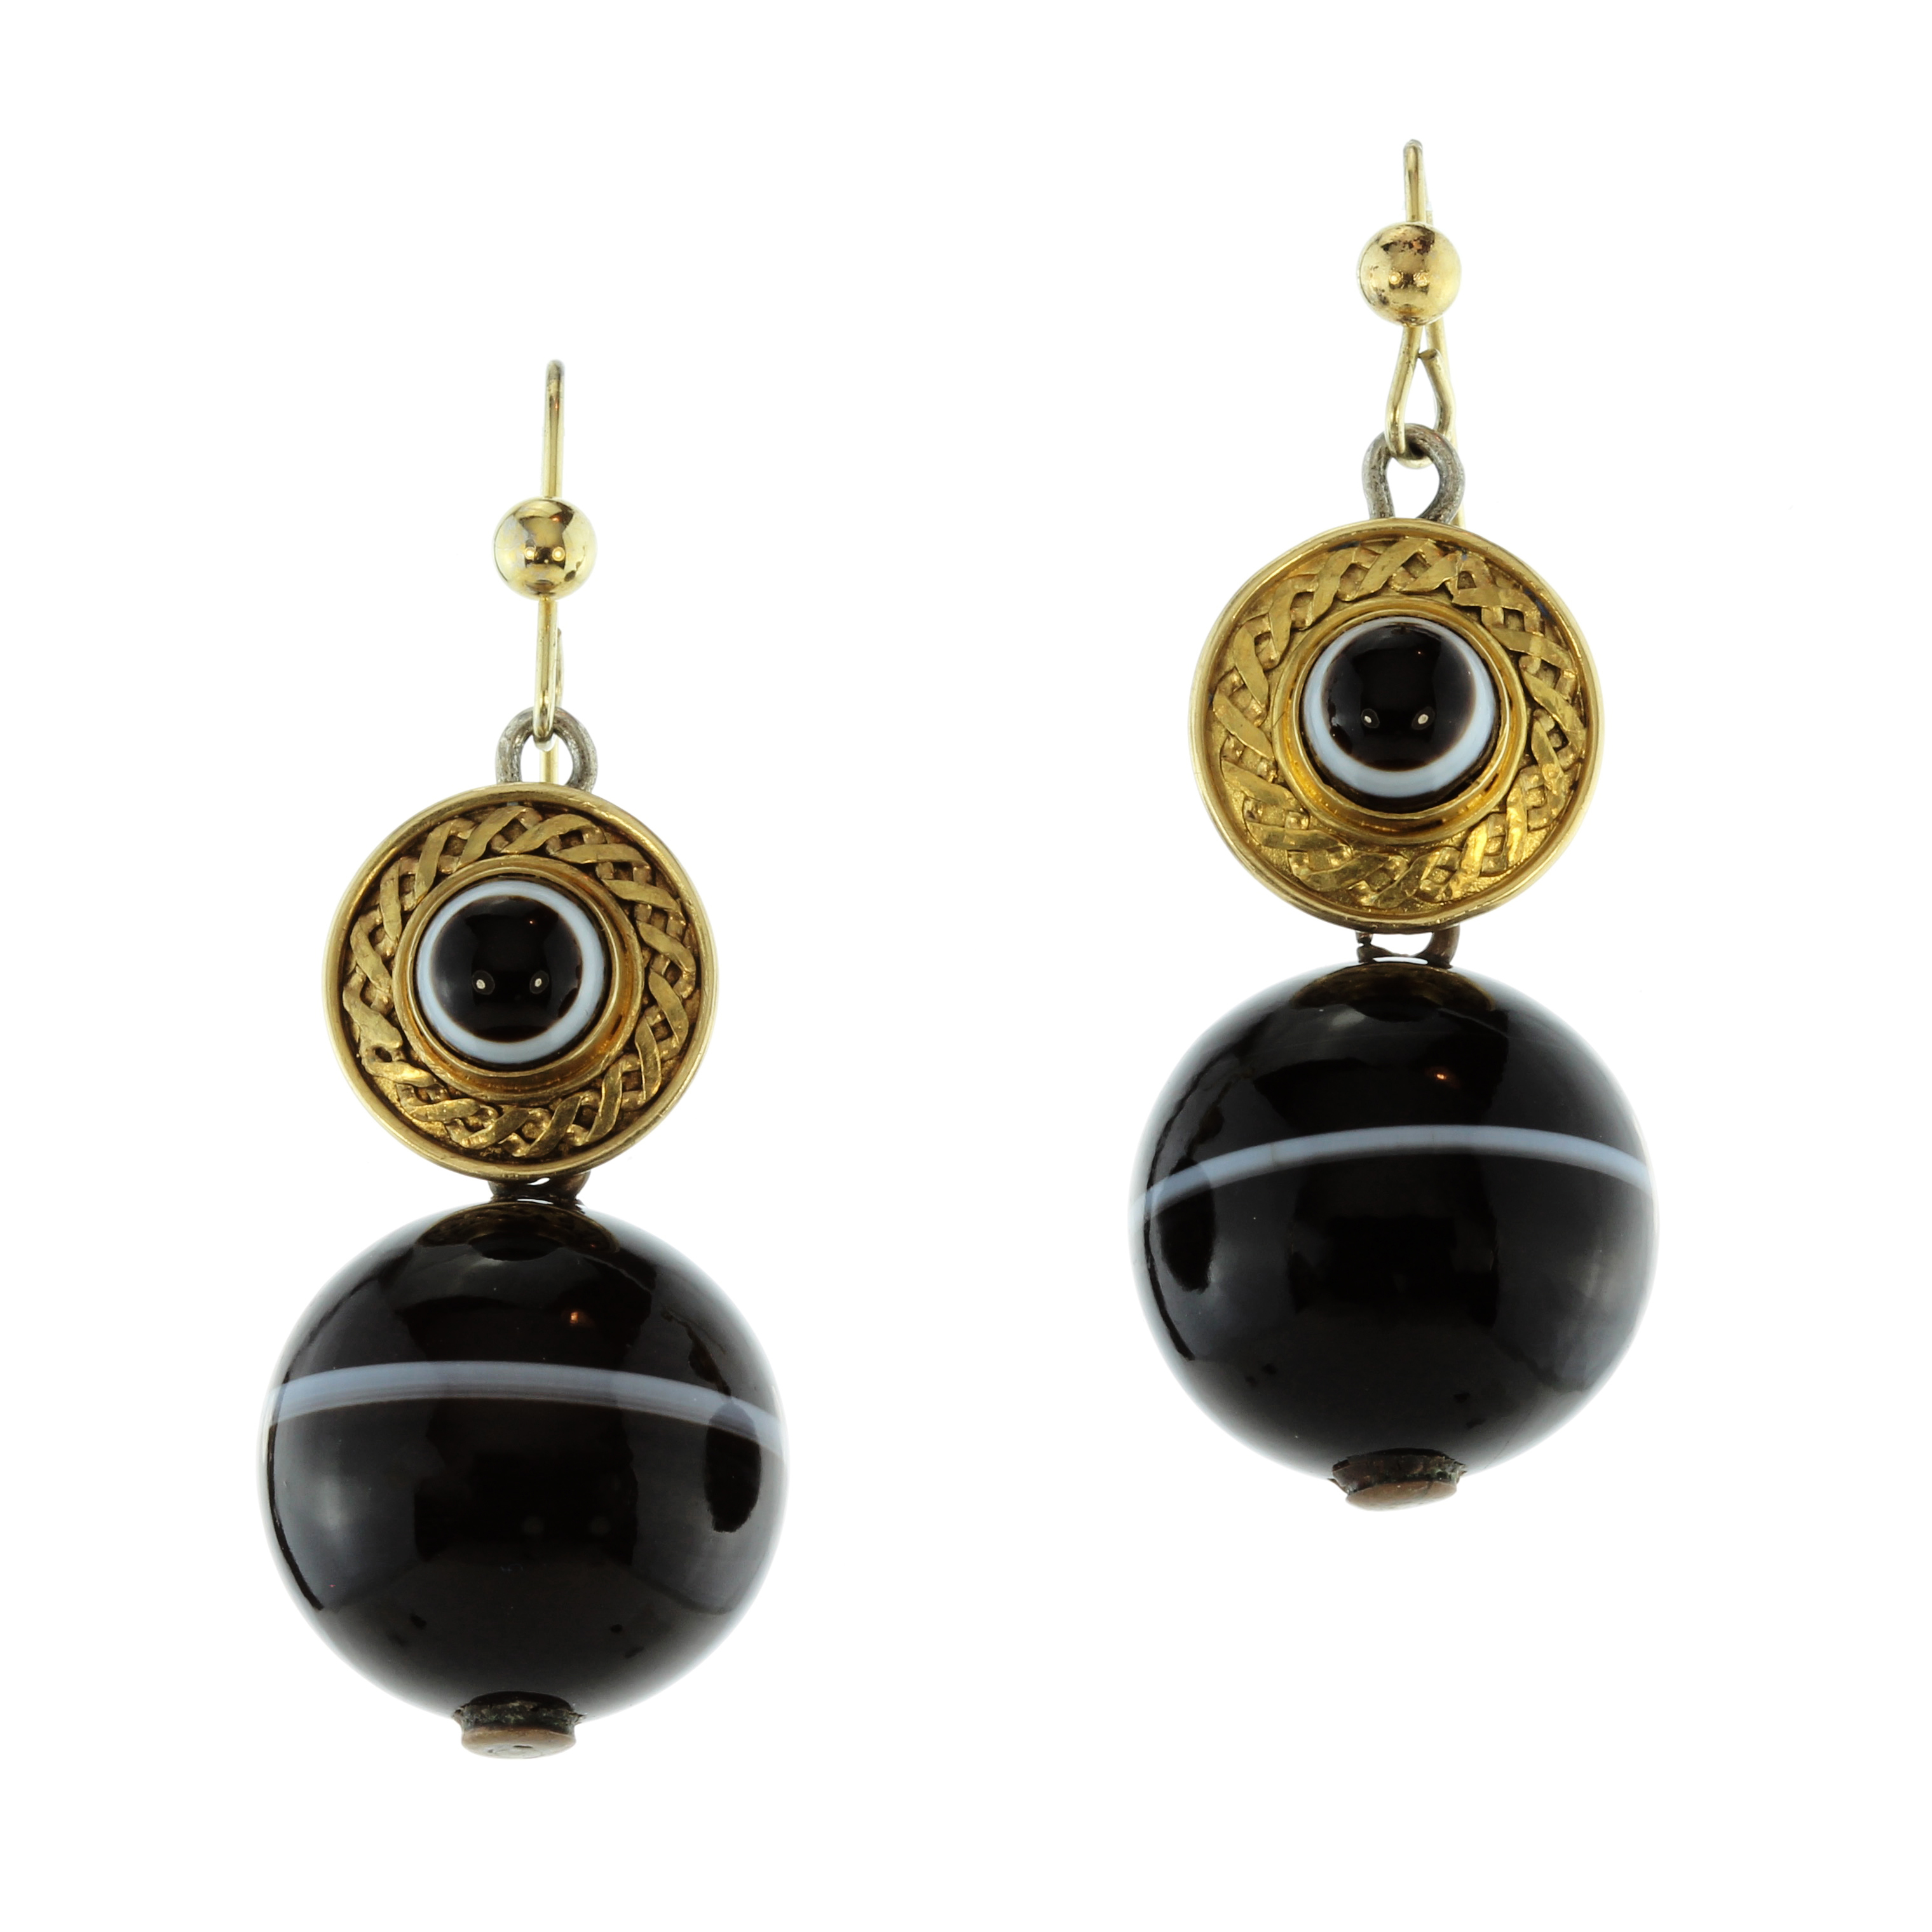 Los 42 - A pair of antique Victorian banded agate earrings each designed as a large banded agate bead,